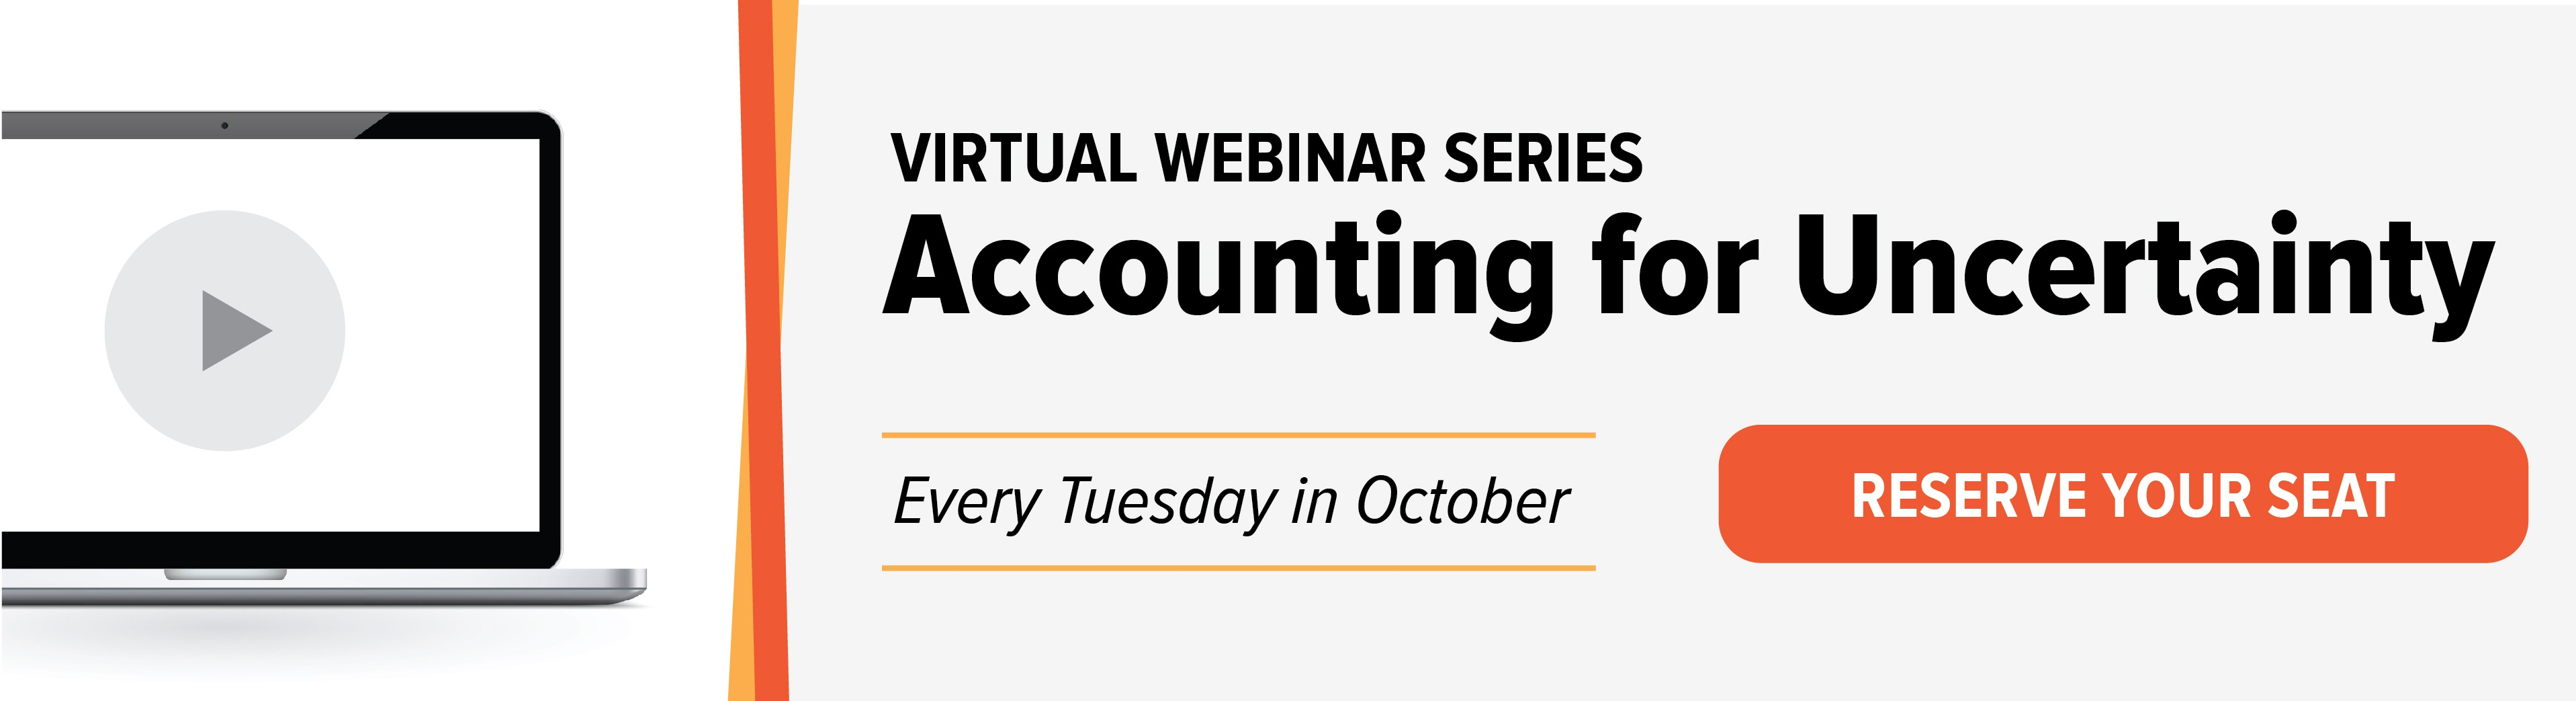 Click here to register for Accounting for Uncertainty Webinar Series | Every Tuesday in October 2020